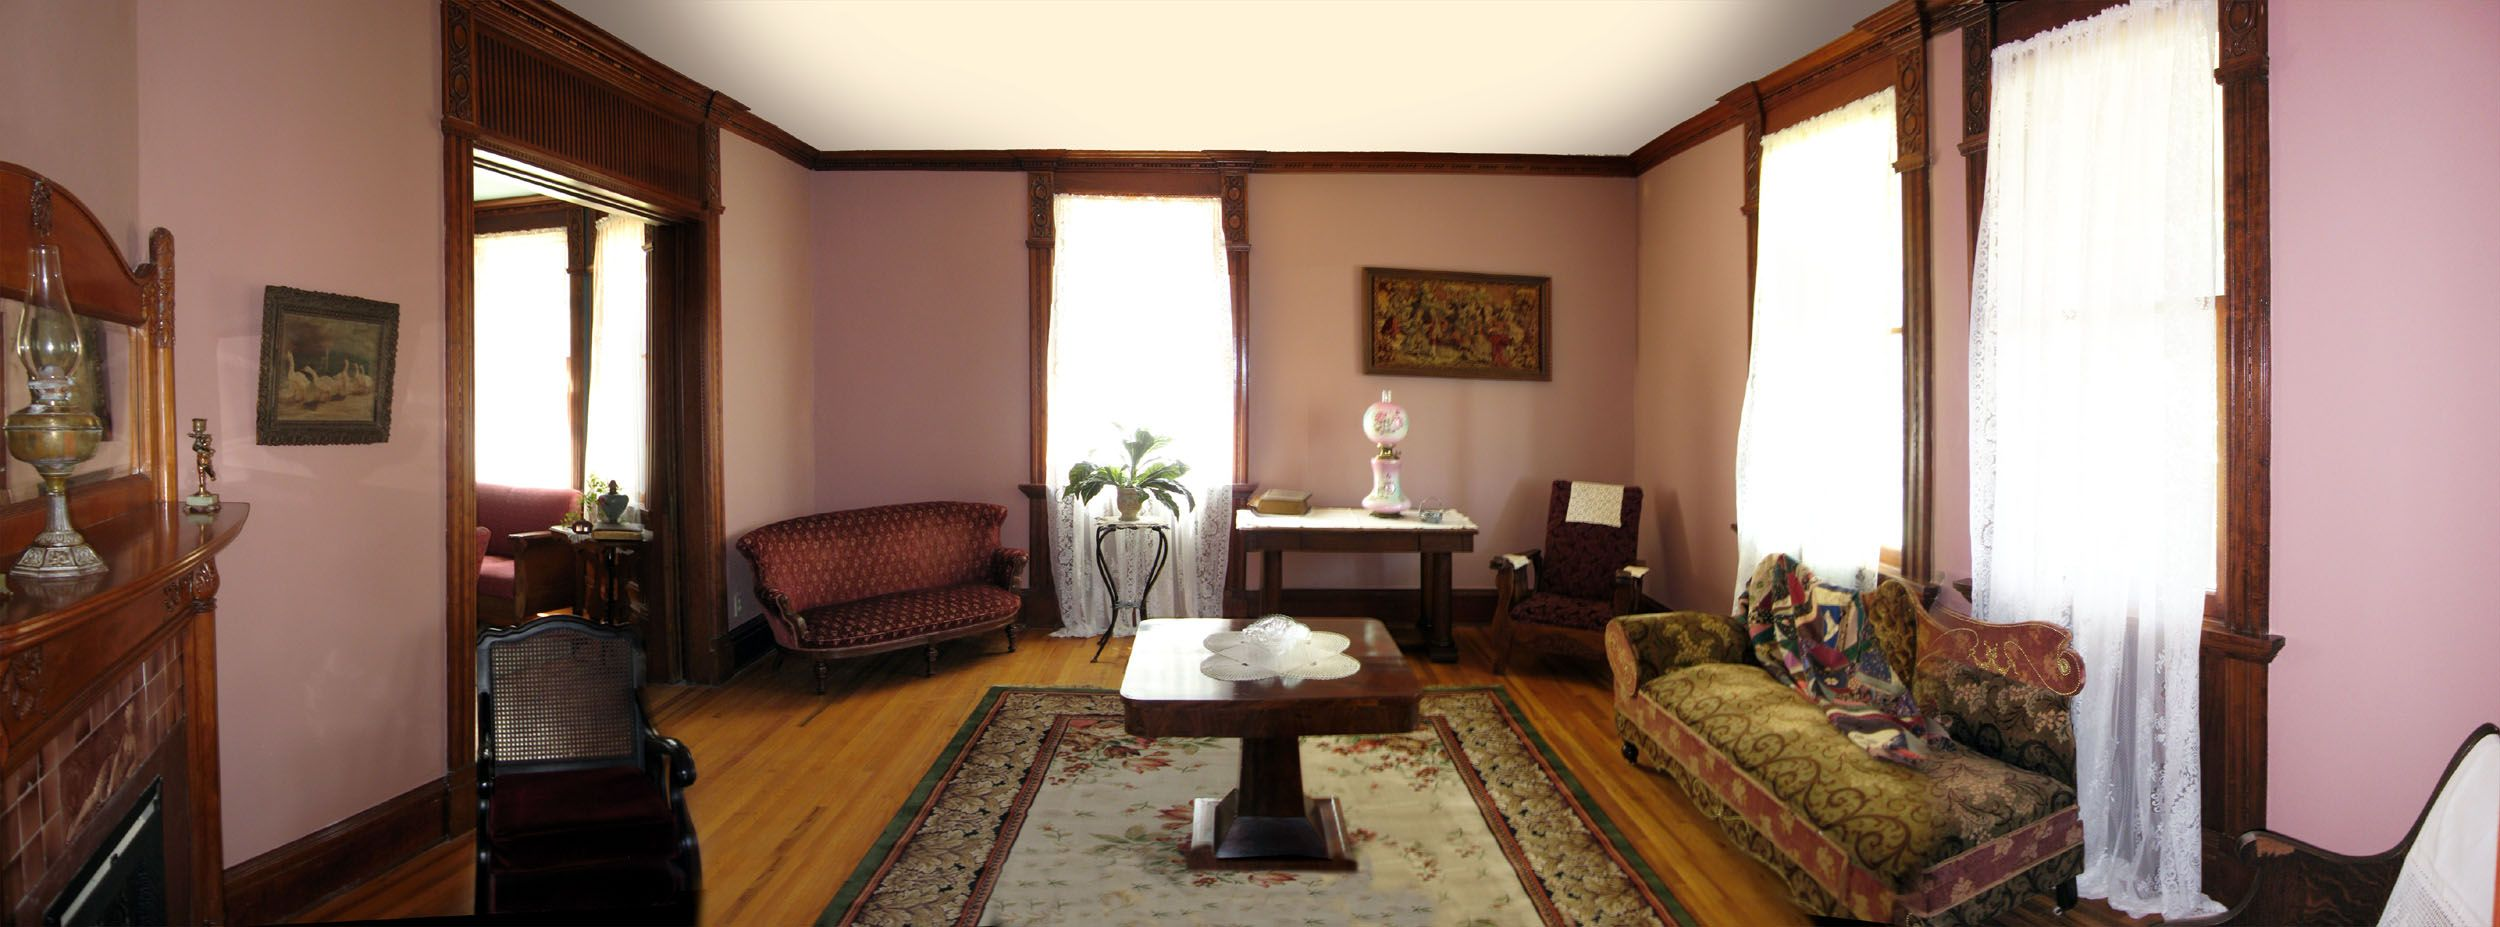 This is the living room and the parlor can be seen with the double pocket door off to the left.